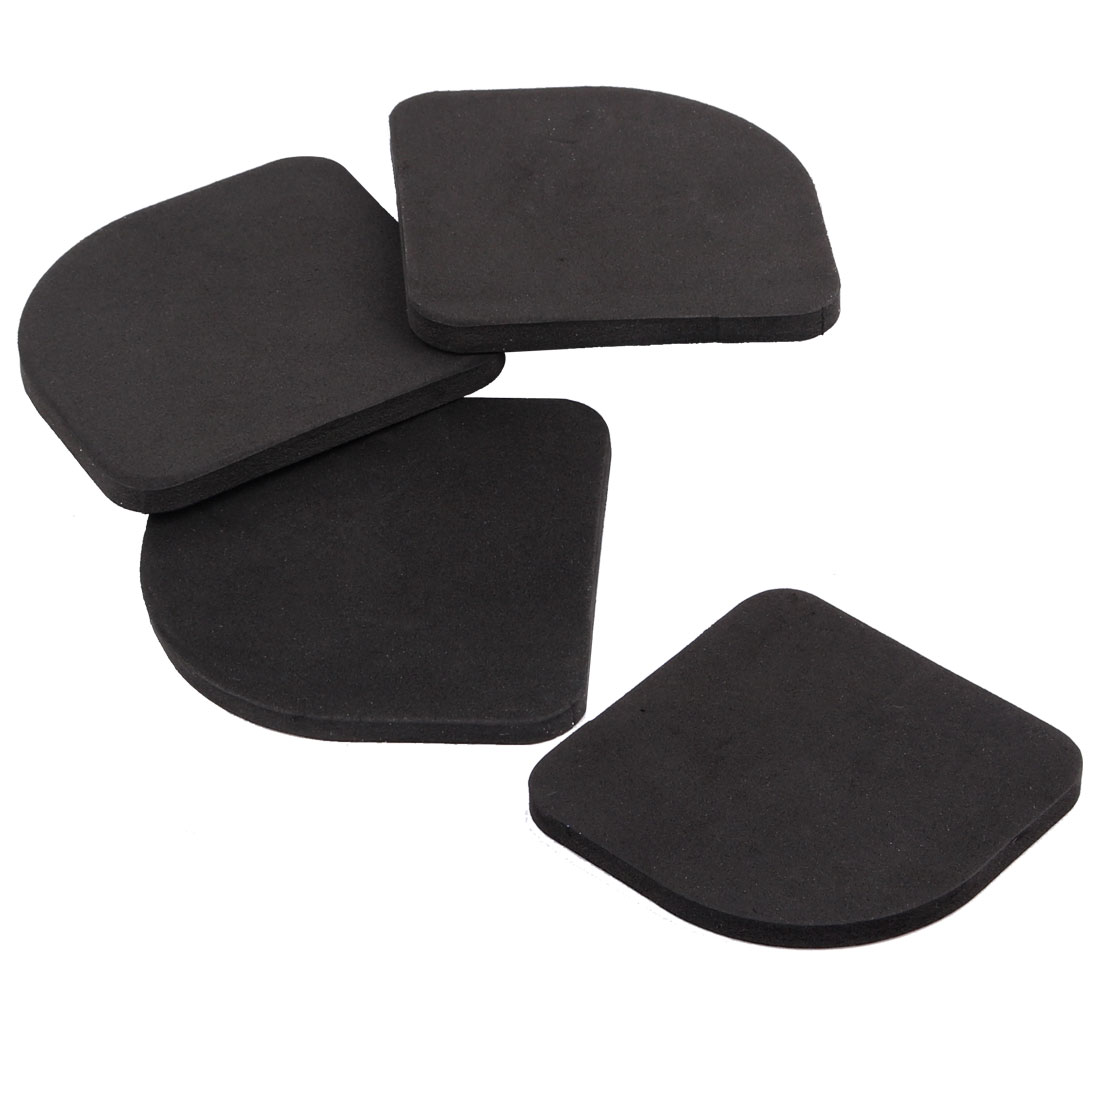 4 PCS Sponge Washing Machine Chair Leg Furniture Foot Pads Mats Black 10cm x 9cm x 0.5cm